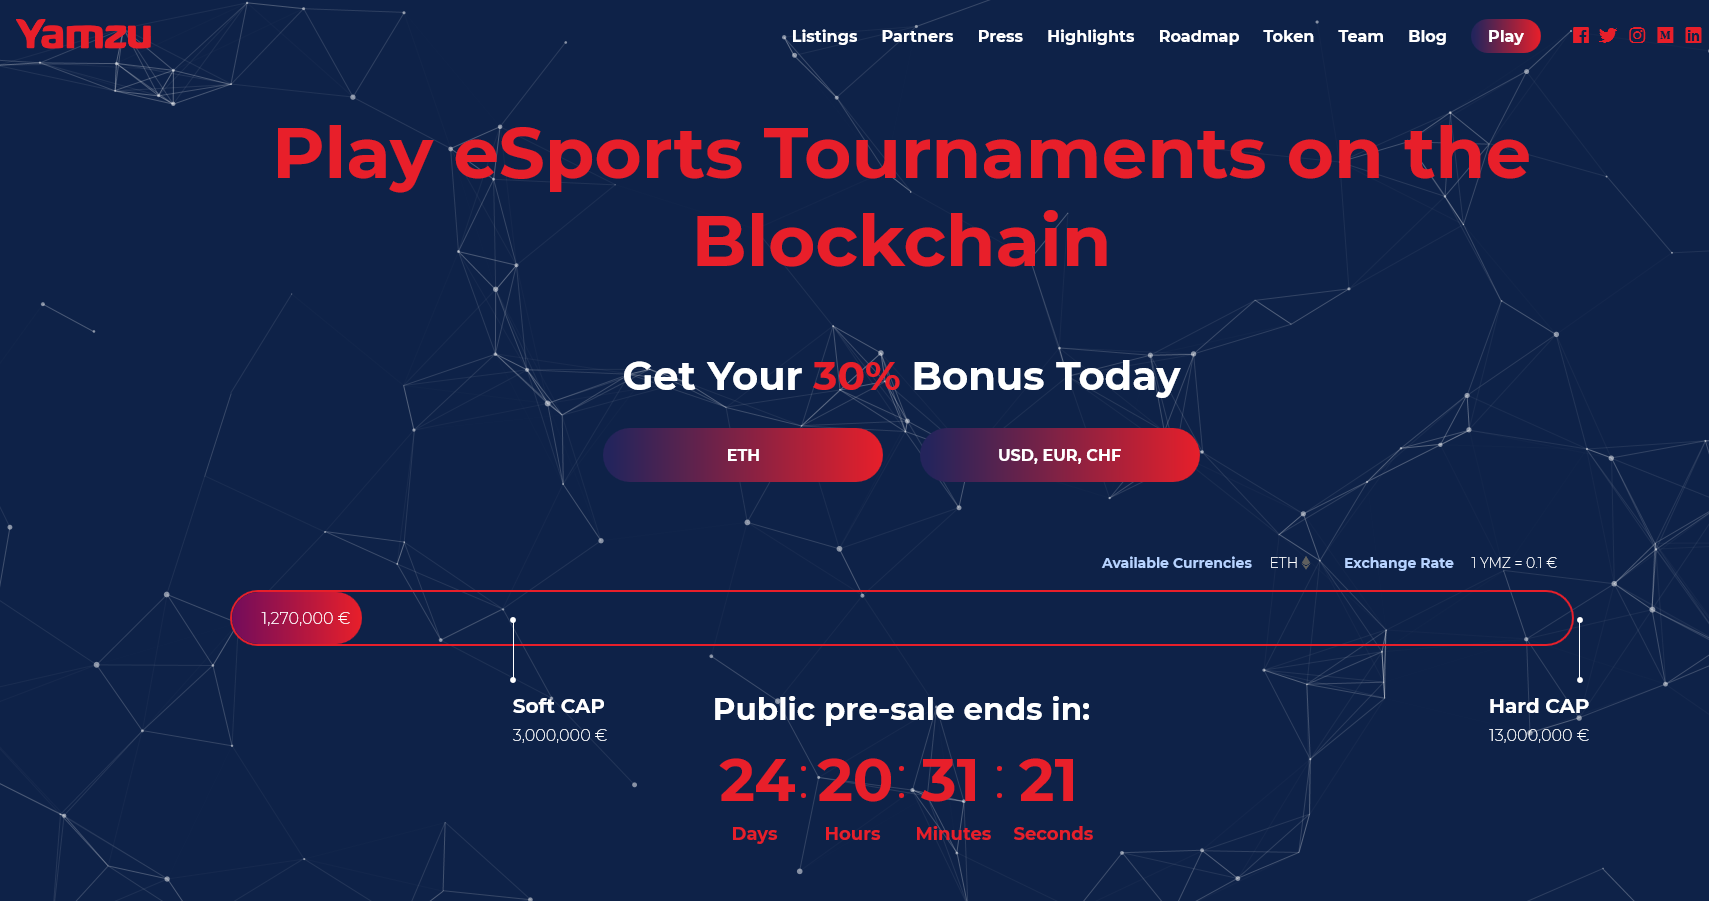 Screenshot_2018-07-31 Yamzu Play eSports Tournaments on the Blockchain (1).png